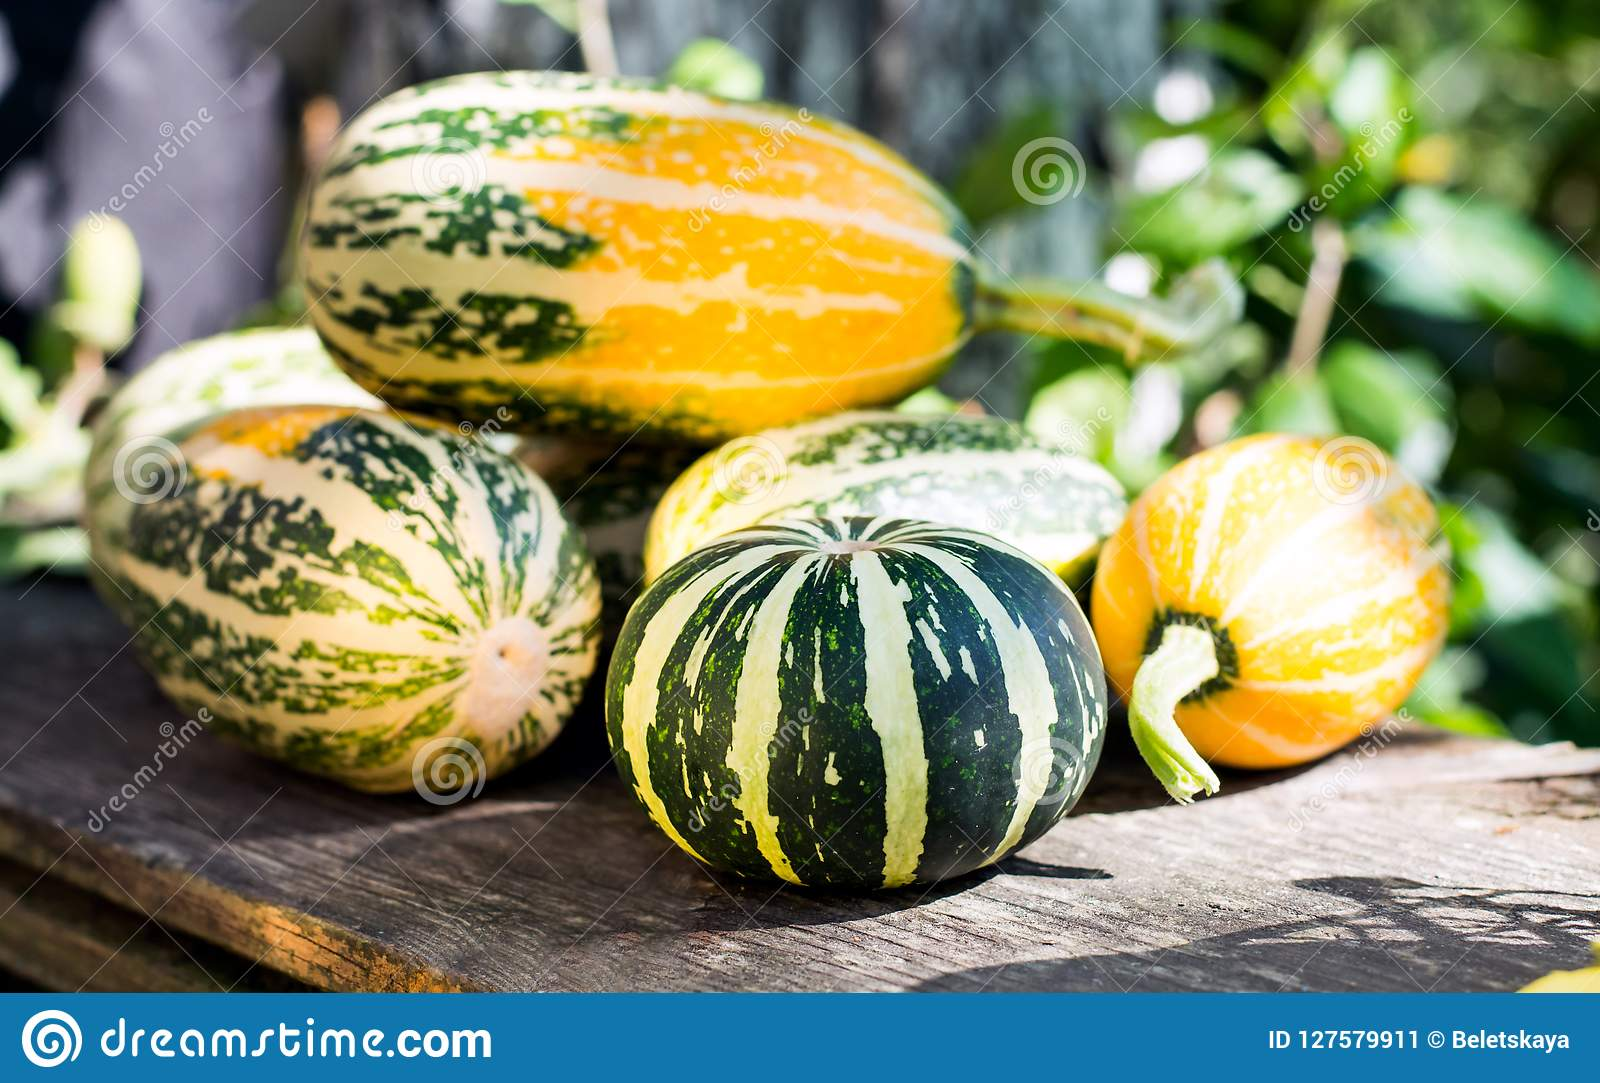 Magnificent Small Decorative Pumpkins In The Garden On A Wooden Bench Dailytribune Chair Design For Home Dailytribuneorg